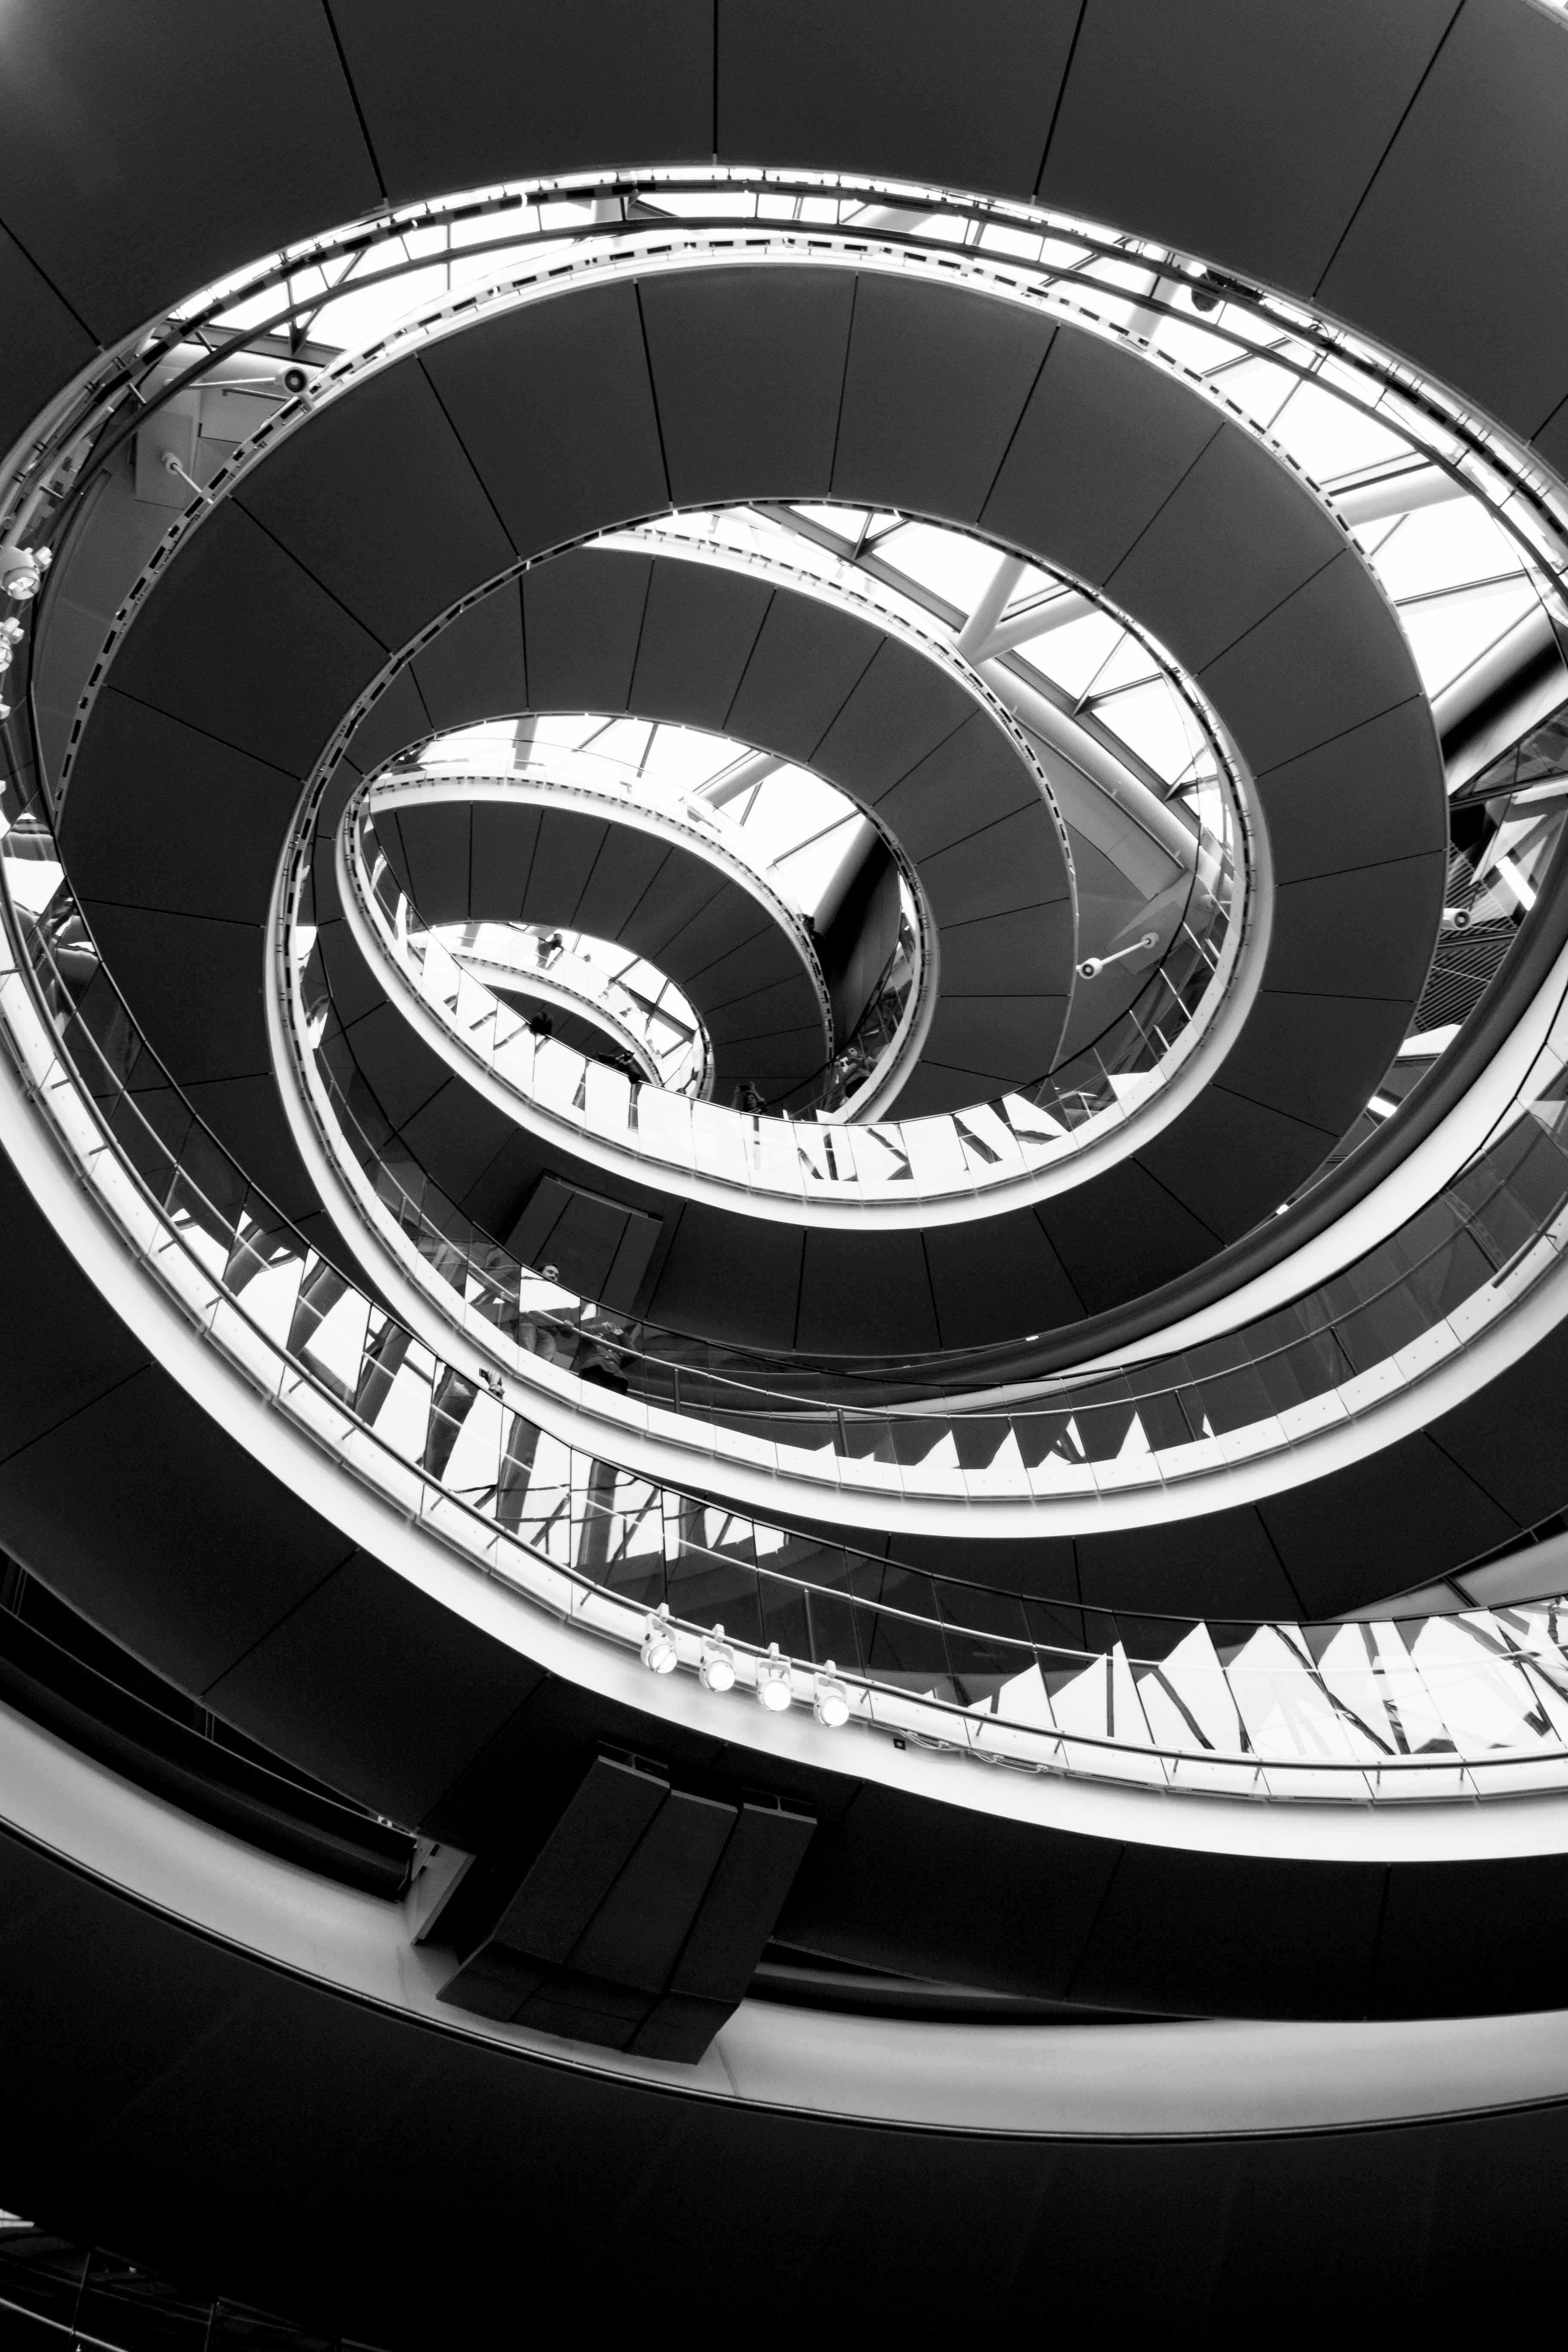 City Hall staircase in B&W